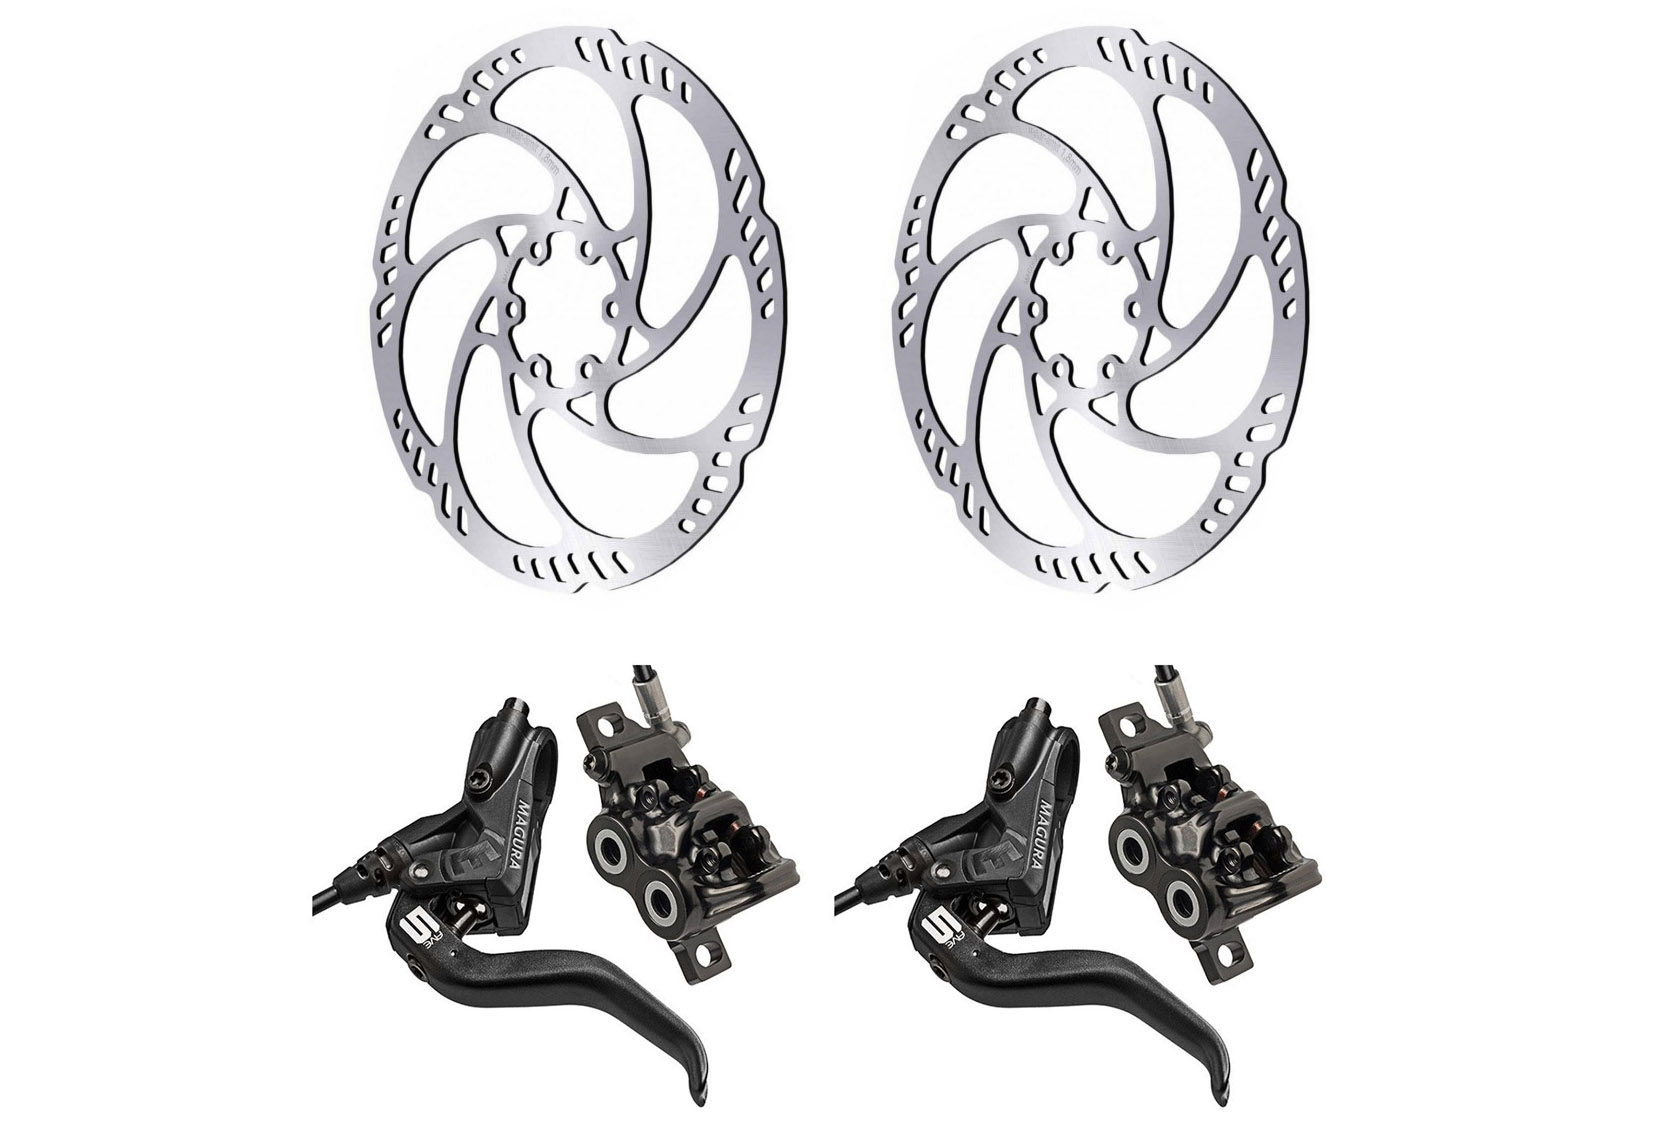 Magura Front Rear Mt5 Disc Brake Magura Storm Hc Rotor 180mm